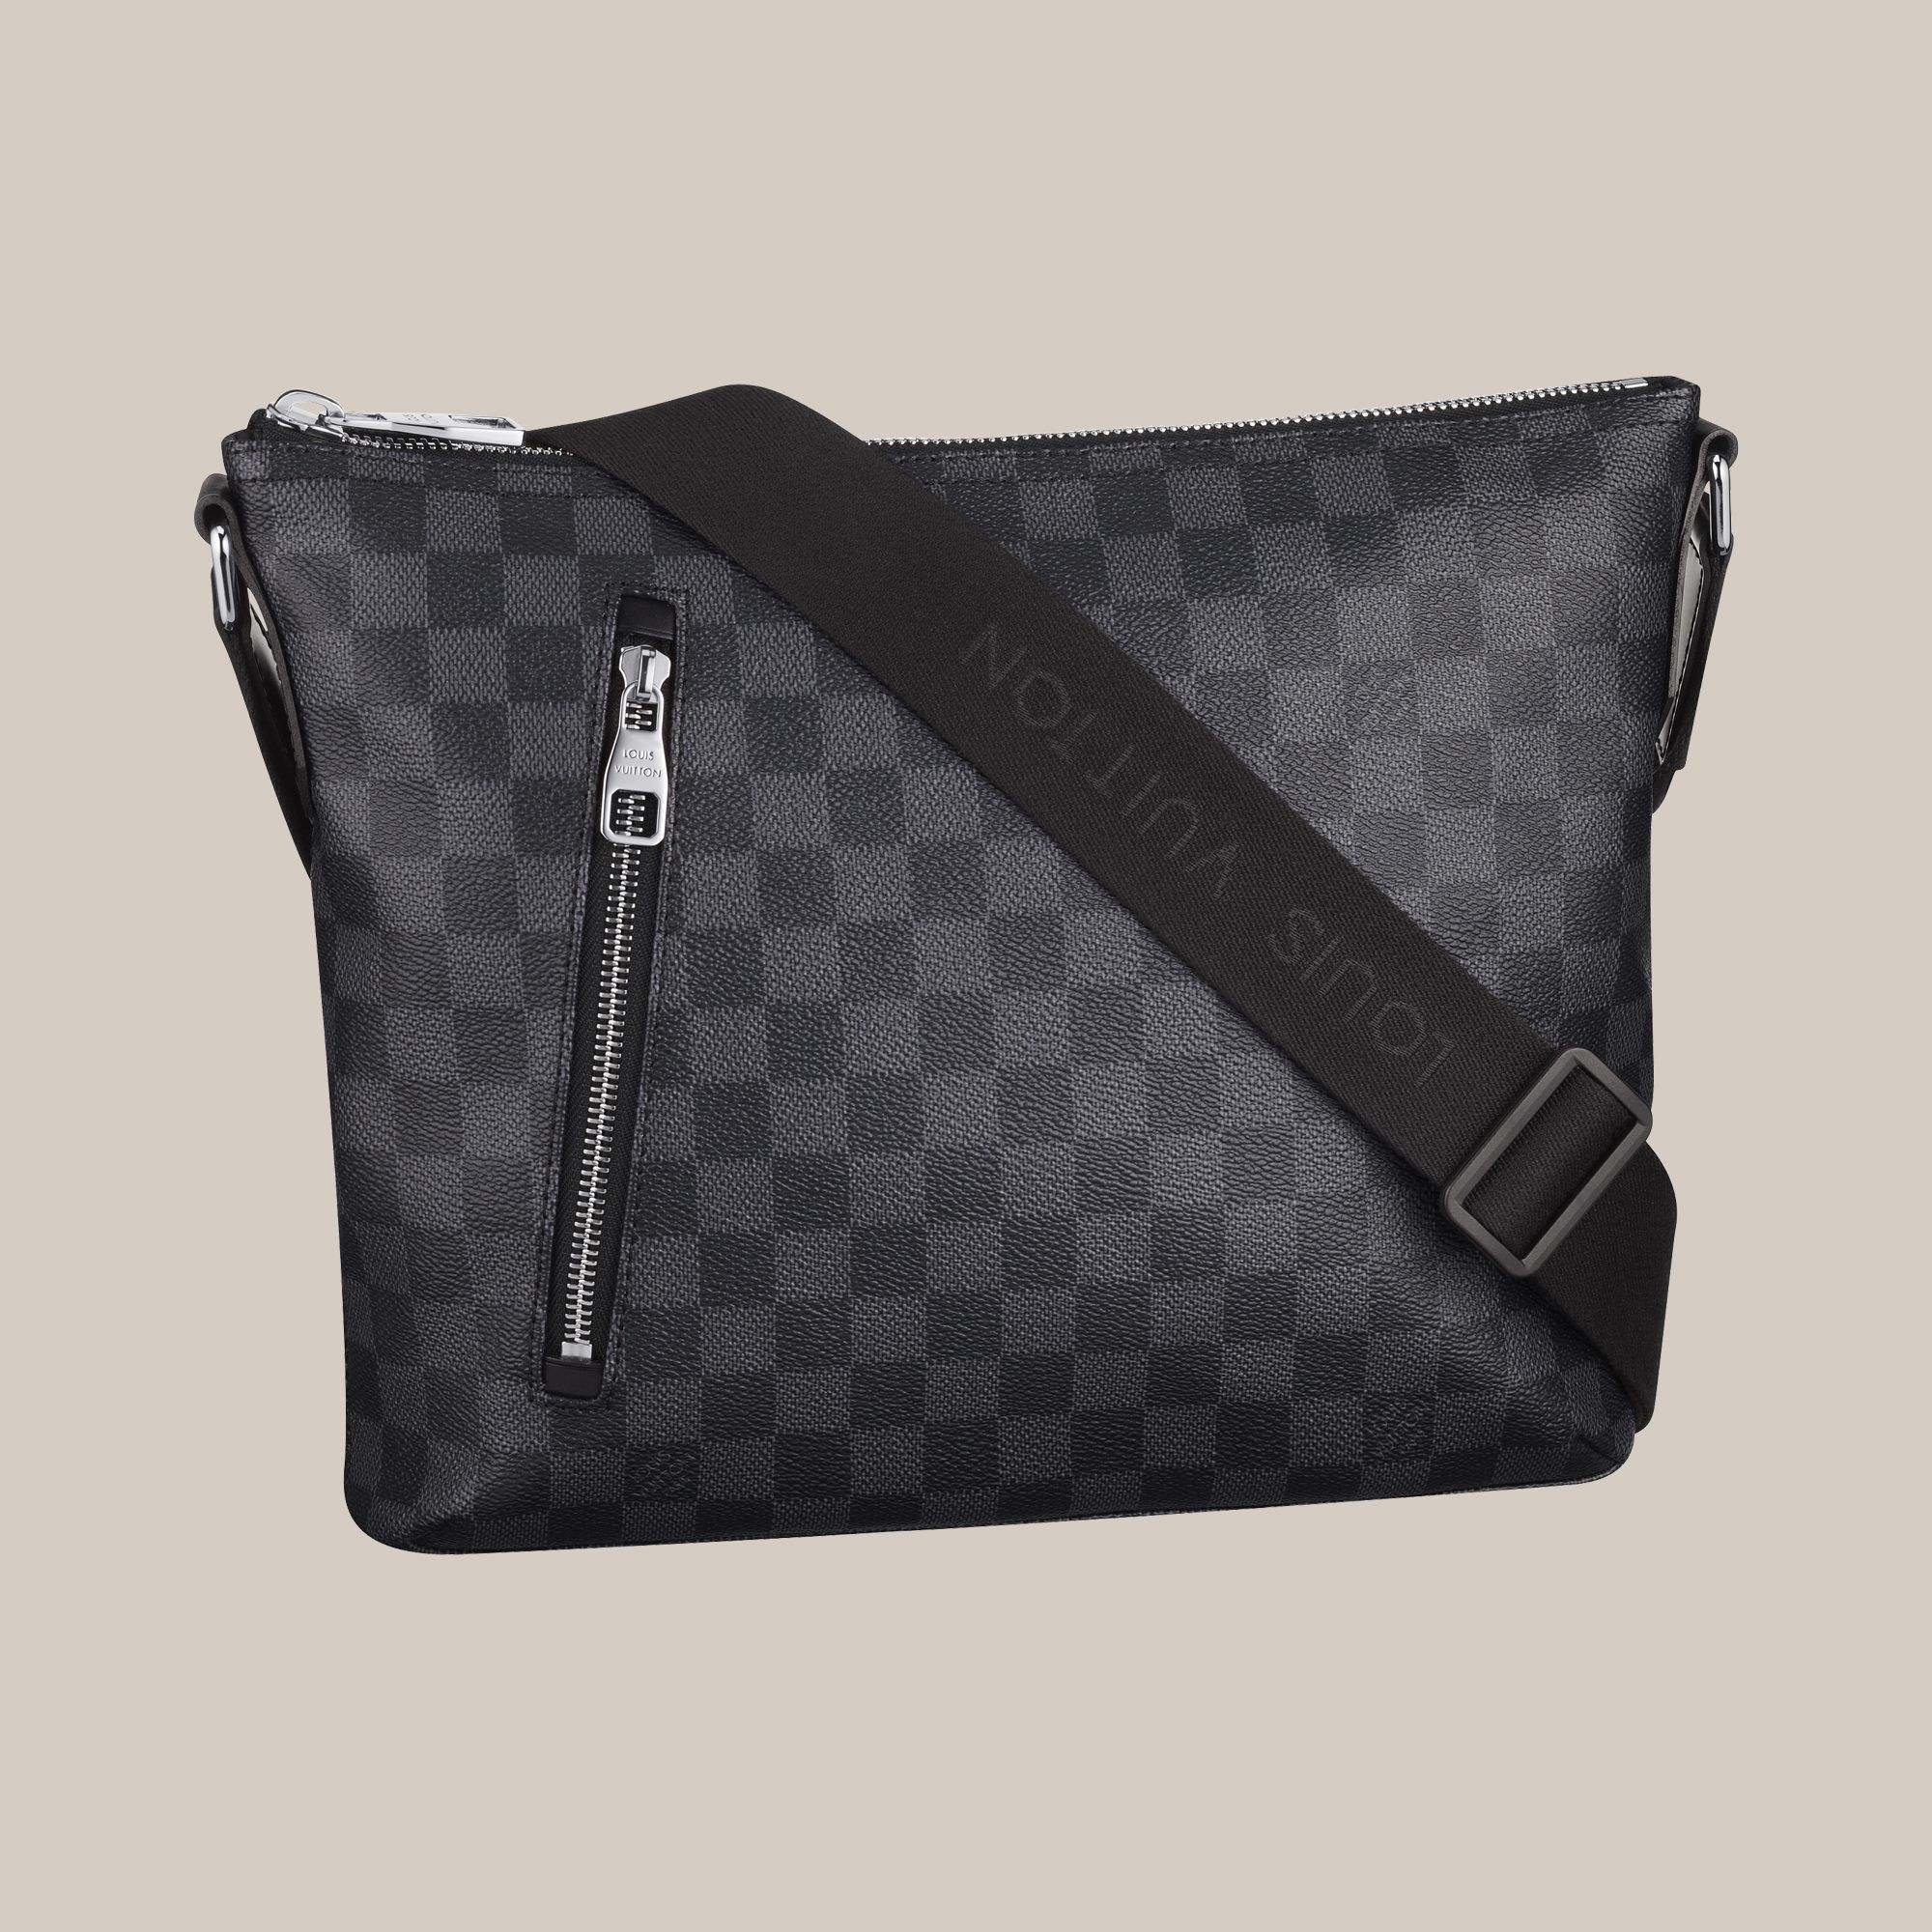 Louis Vuitton Mick PM - - Sacs-homme   Sacoche Louis Vuitton en 2019 ... 547be99fcff